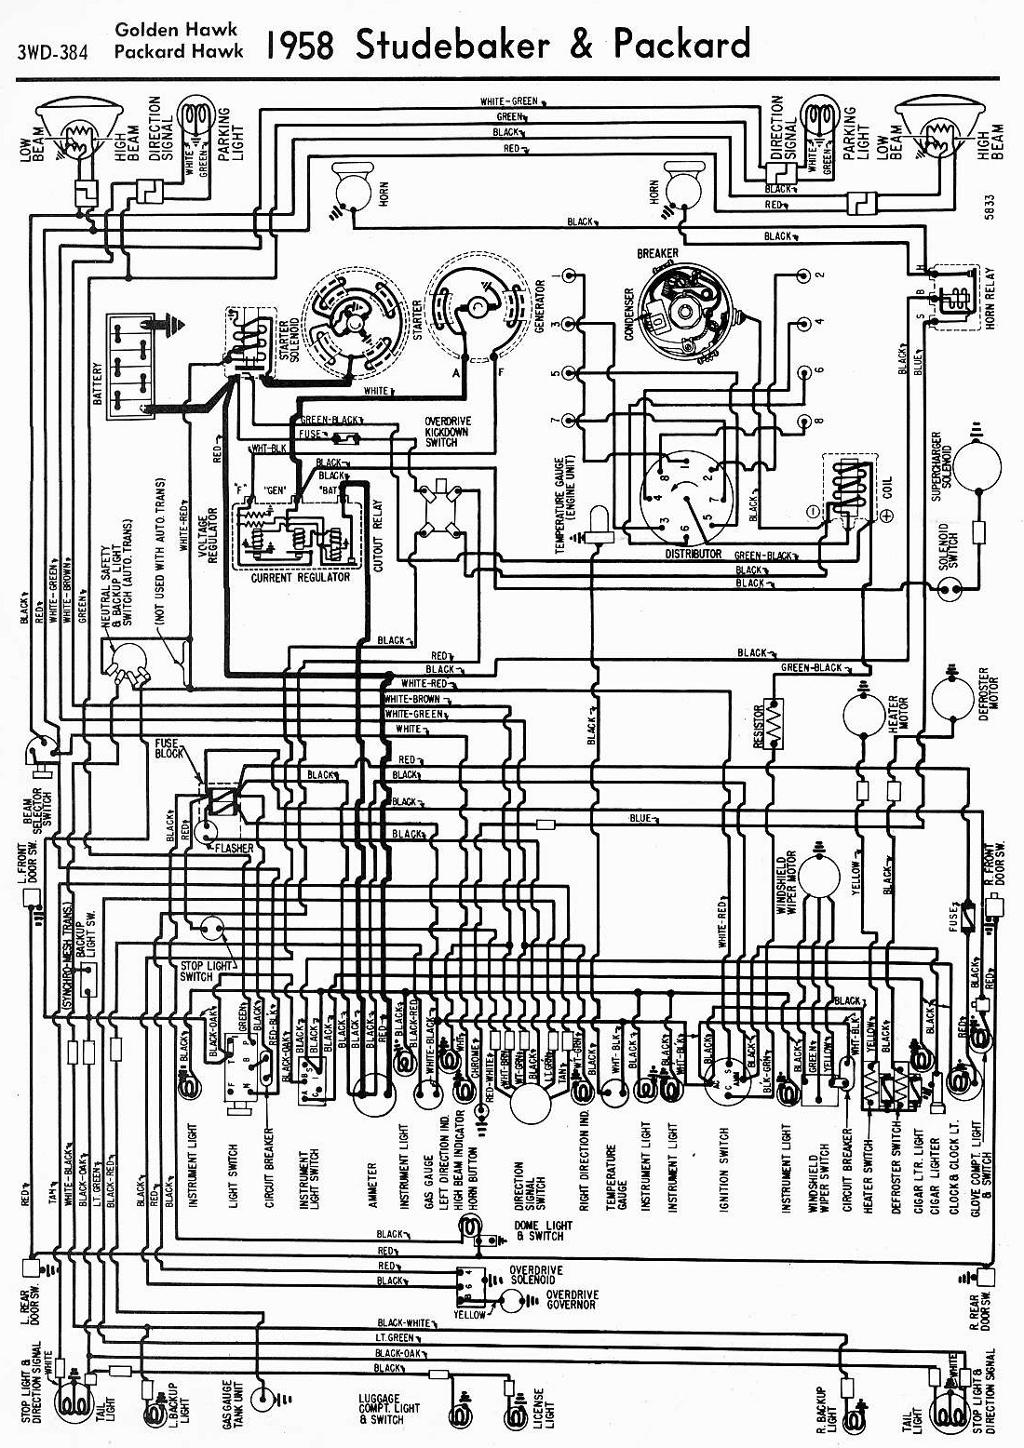 1958 Imperial Wiring Diagram Trusted Diagrams 1959 Edsel Cadillac 1951 Packard Image